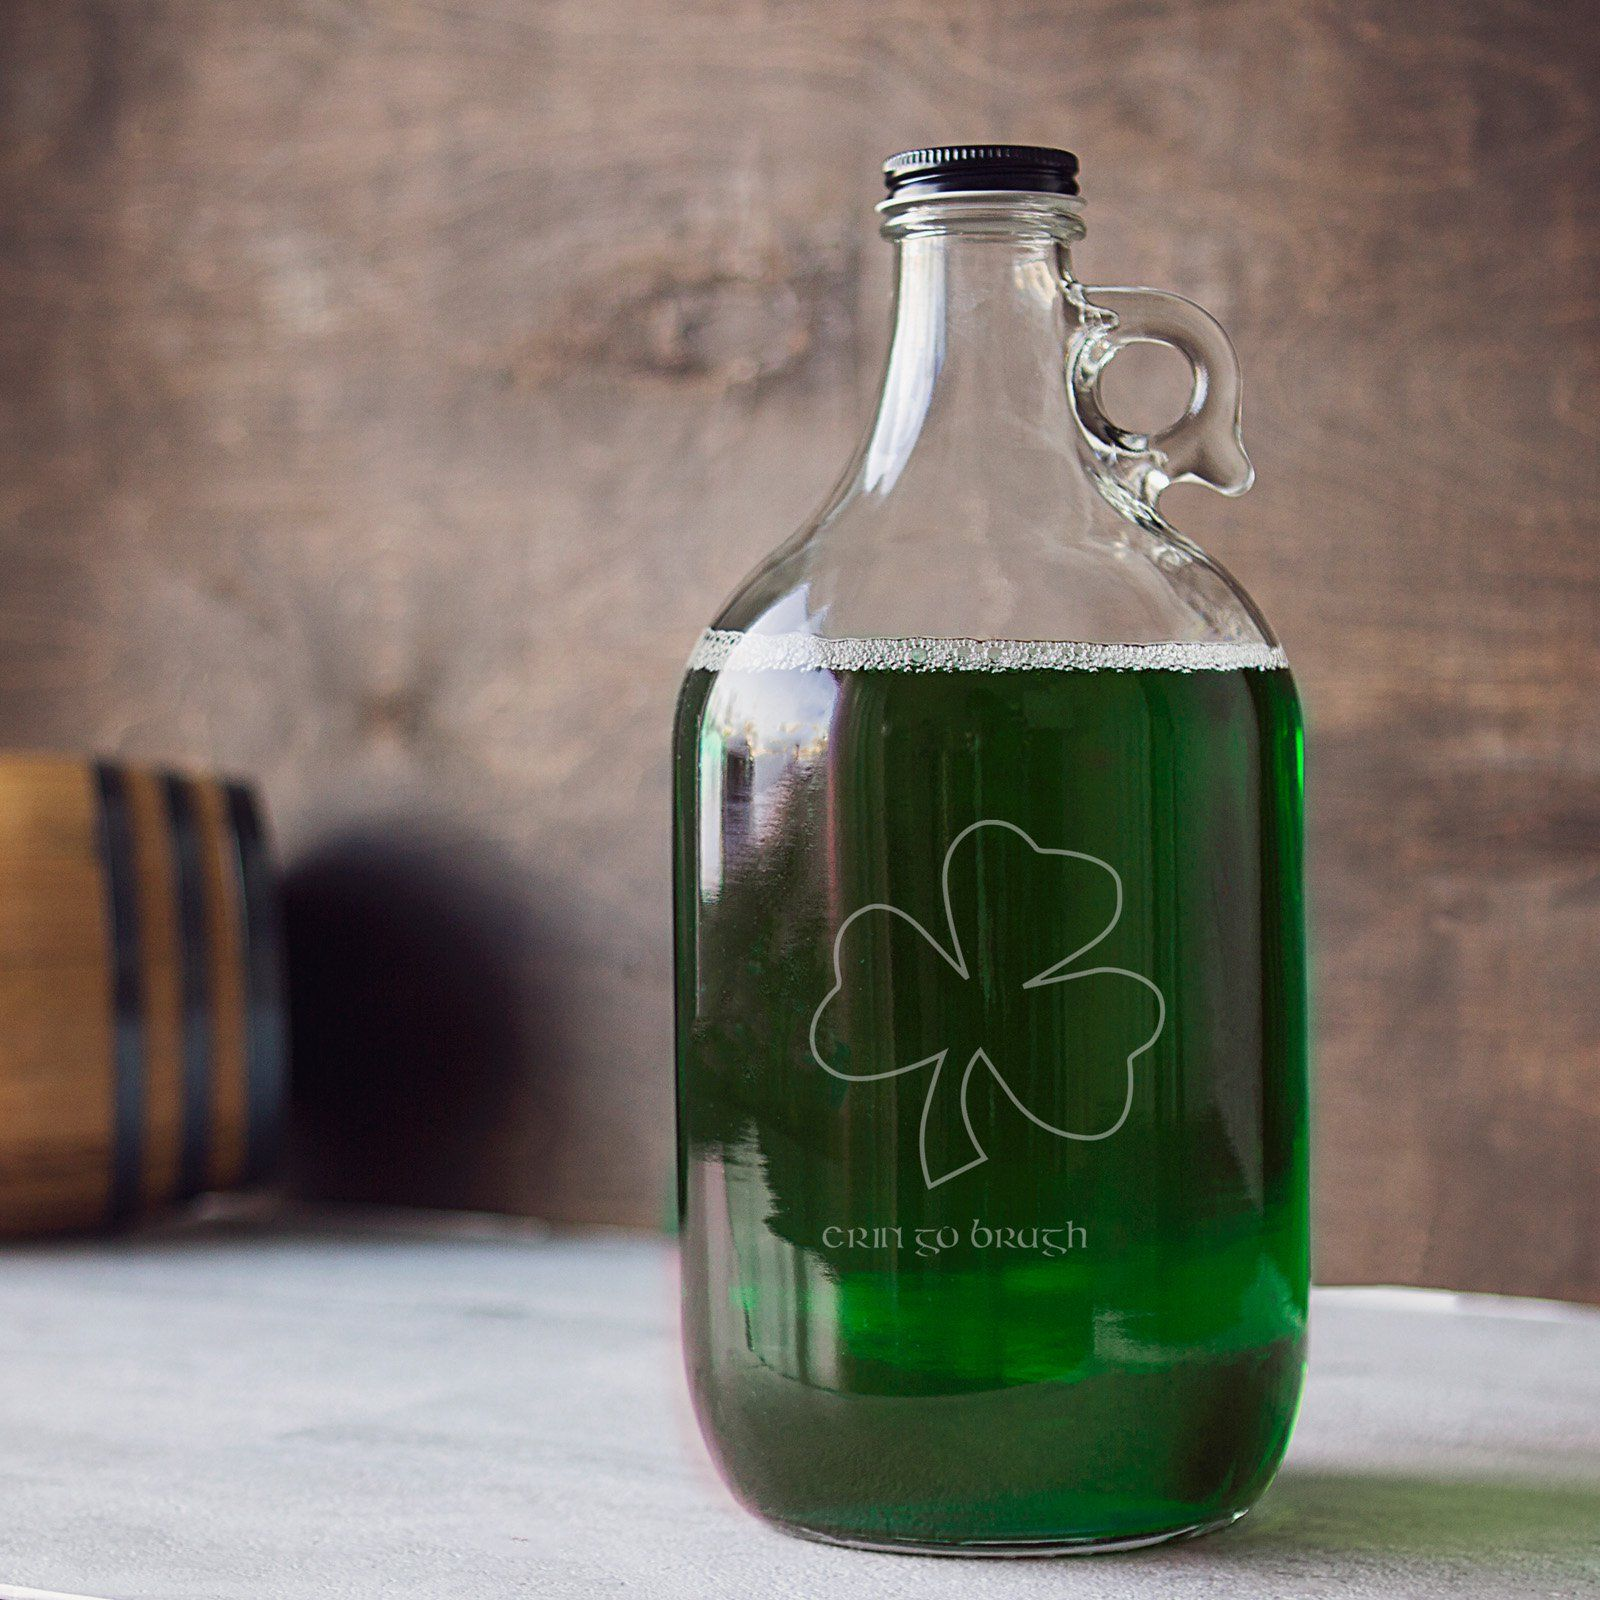 Cathy's Concepts St. Patrick's Day Craft Beer Growler -   19 crafts beer growler